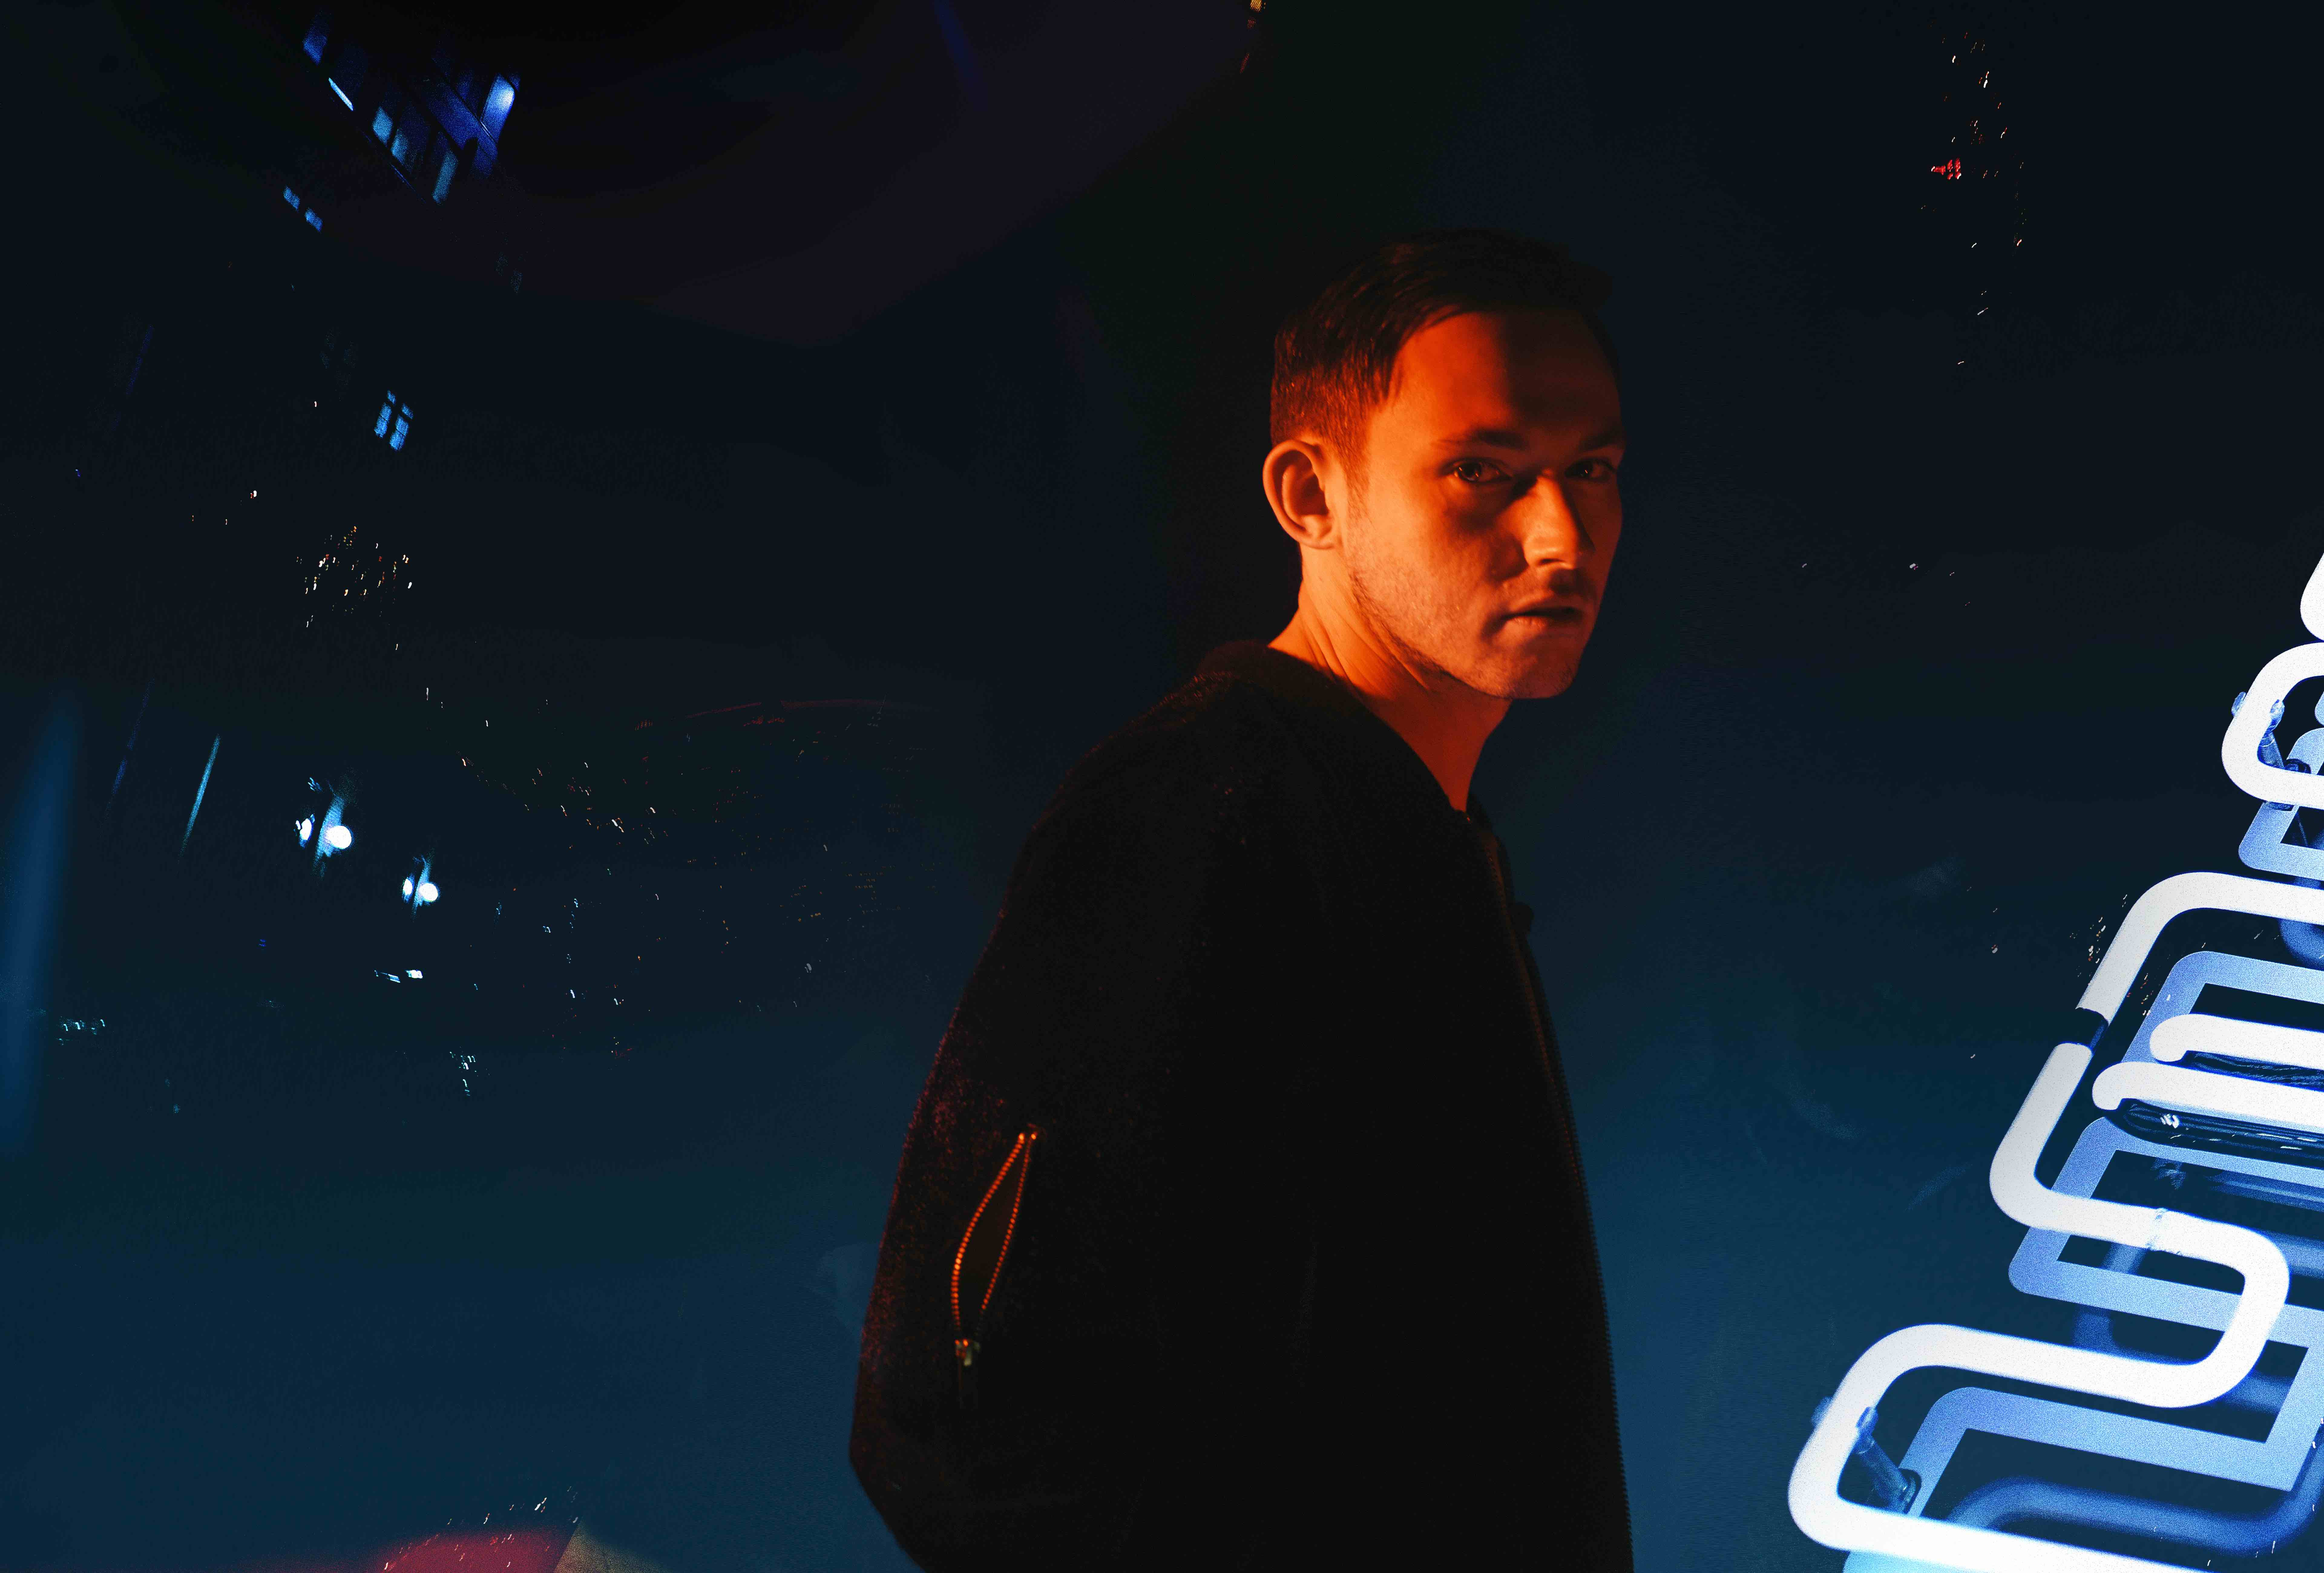 """Hudson Mohawke Shares New Track """"Scud Books"""" from his forthcoming album 'Lantern'"""